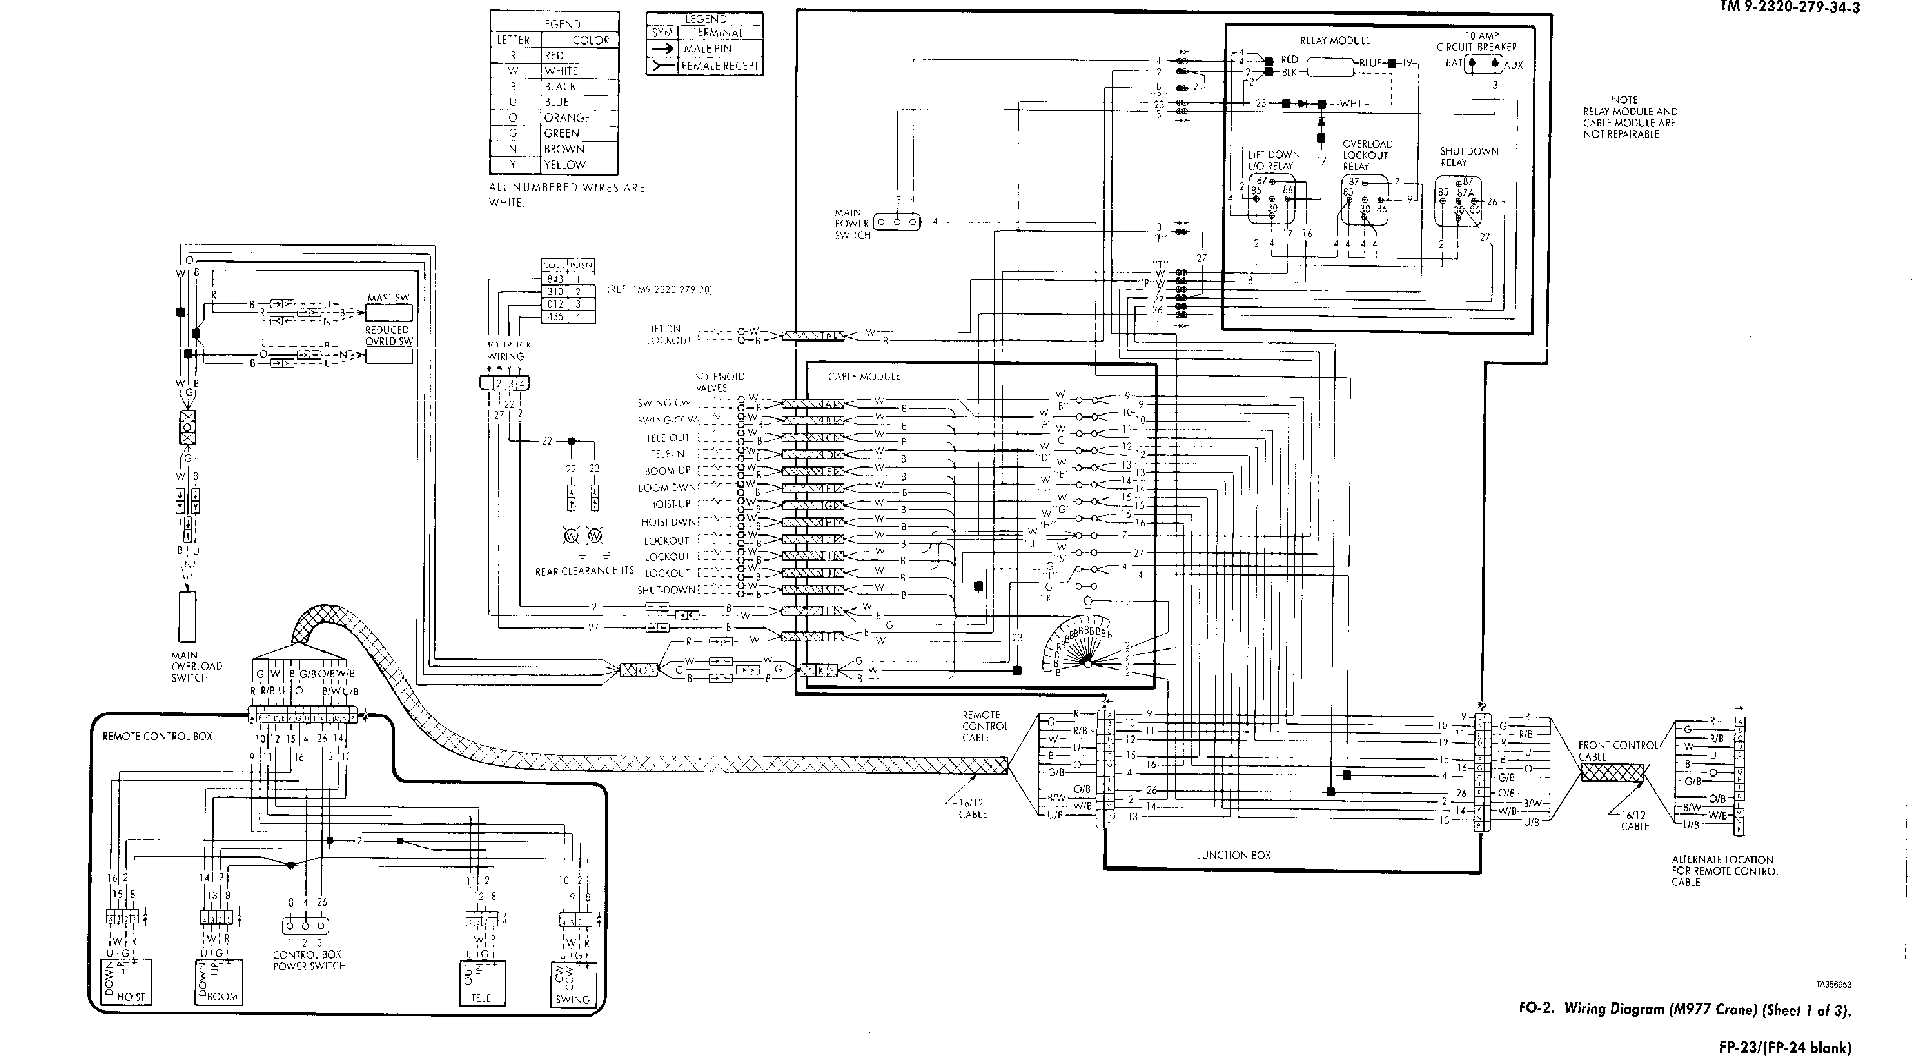 FO-2. Wiring Diagram (M977 Crane) (sheet 1 of 3)